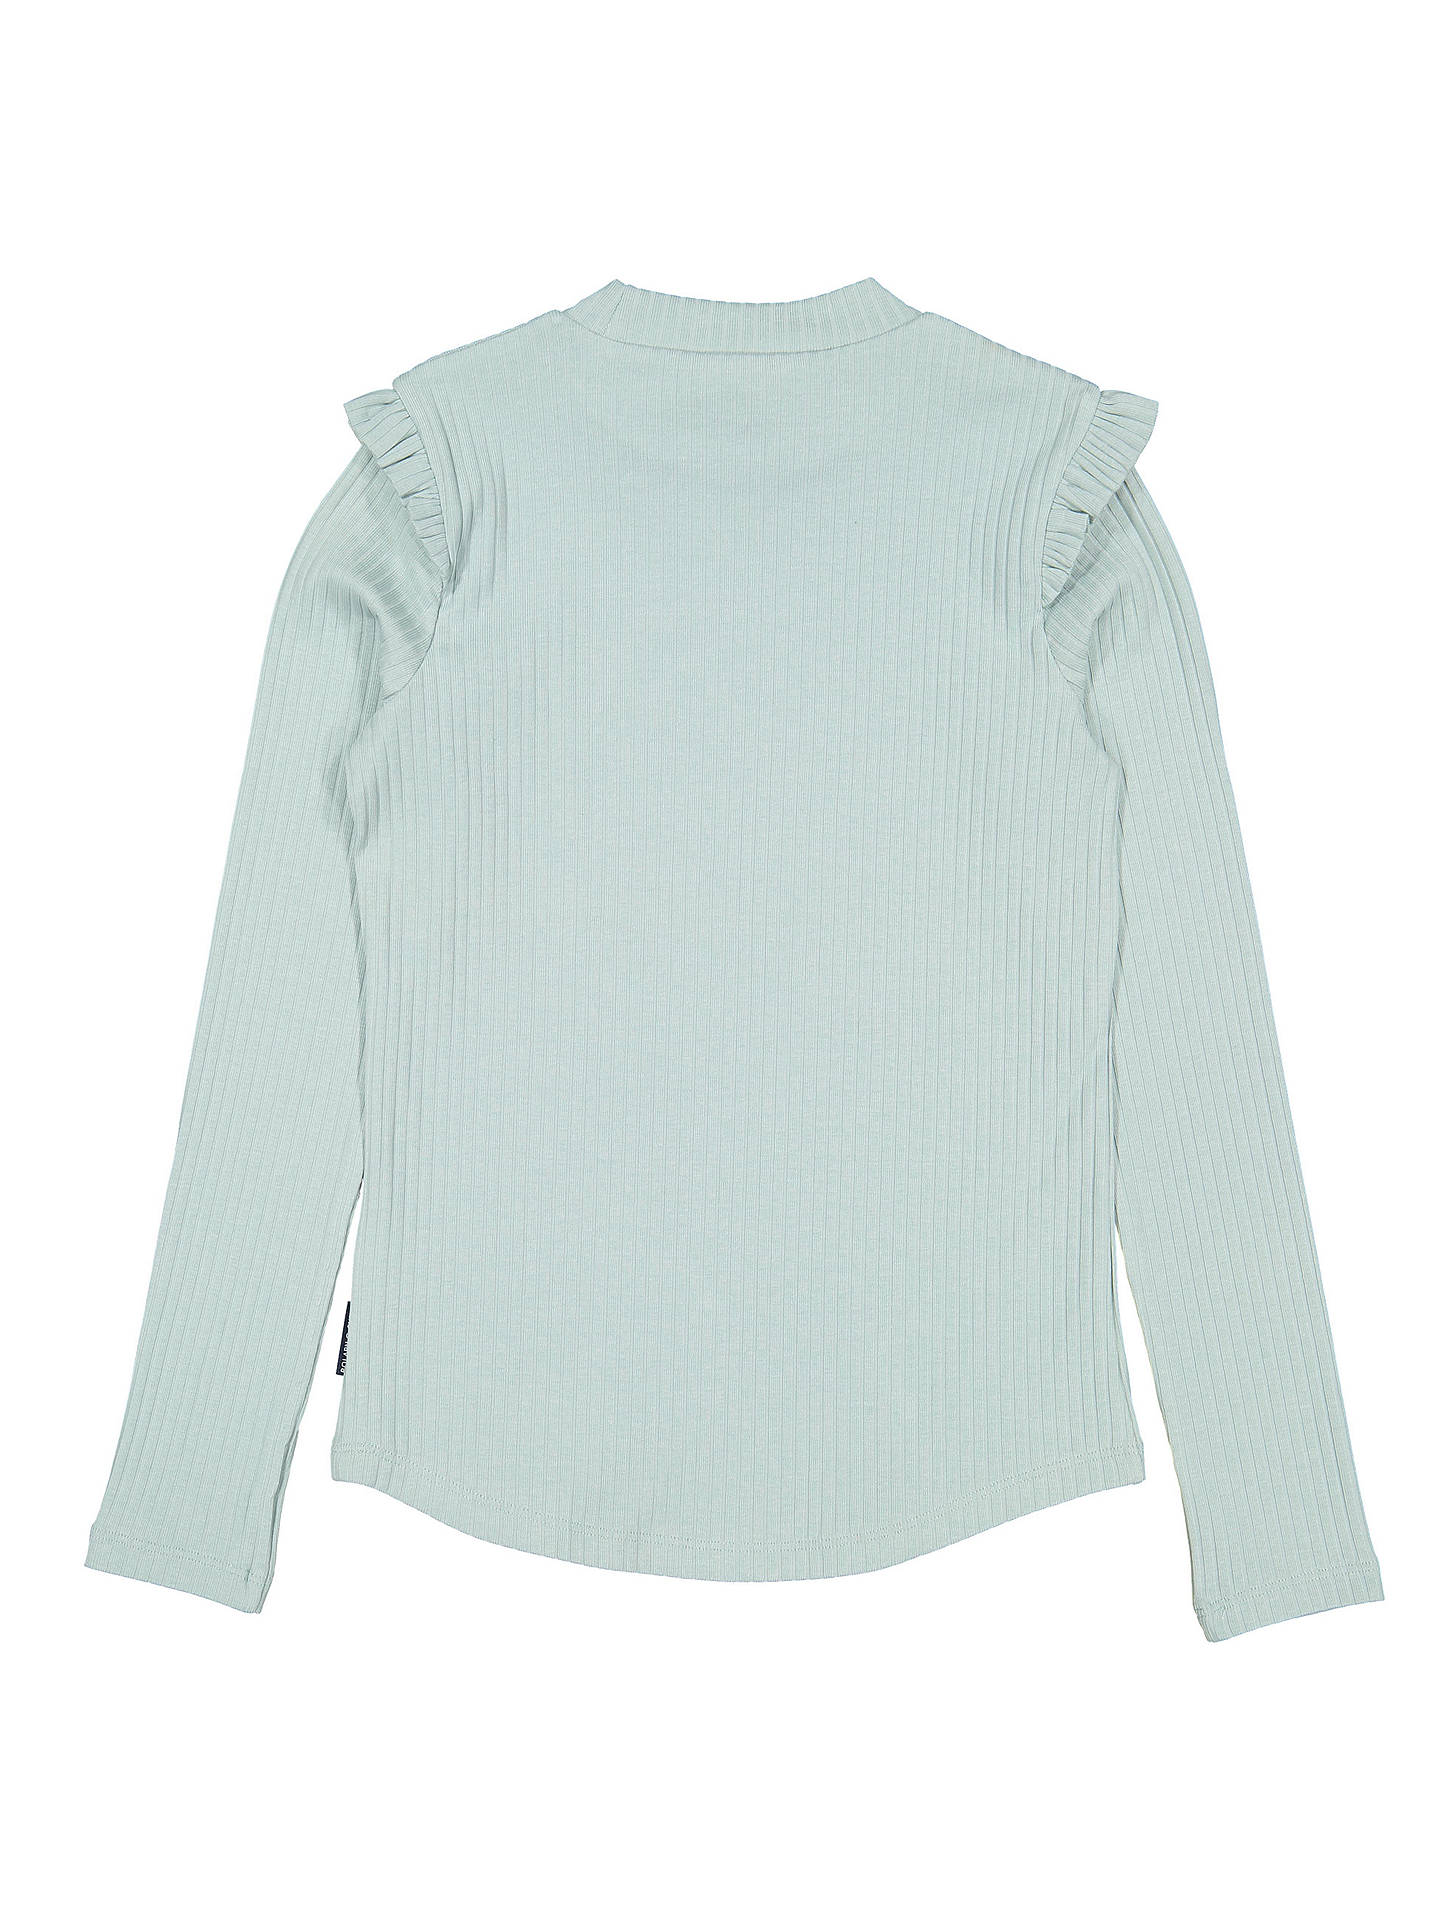 BuyPolarn O. Pyret Children's Ribbed Top, Green, 6-8 years Online at johnlewis.com